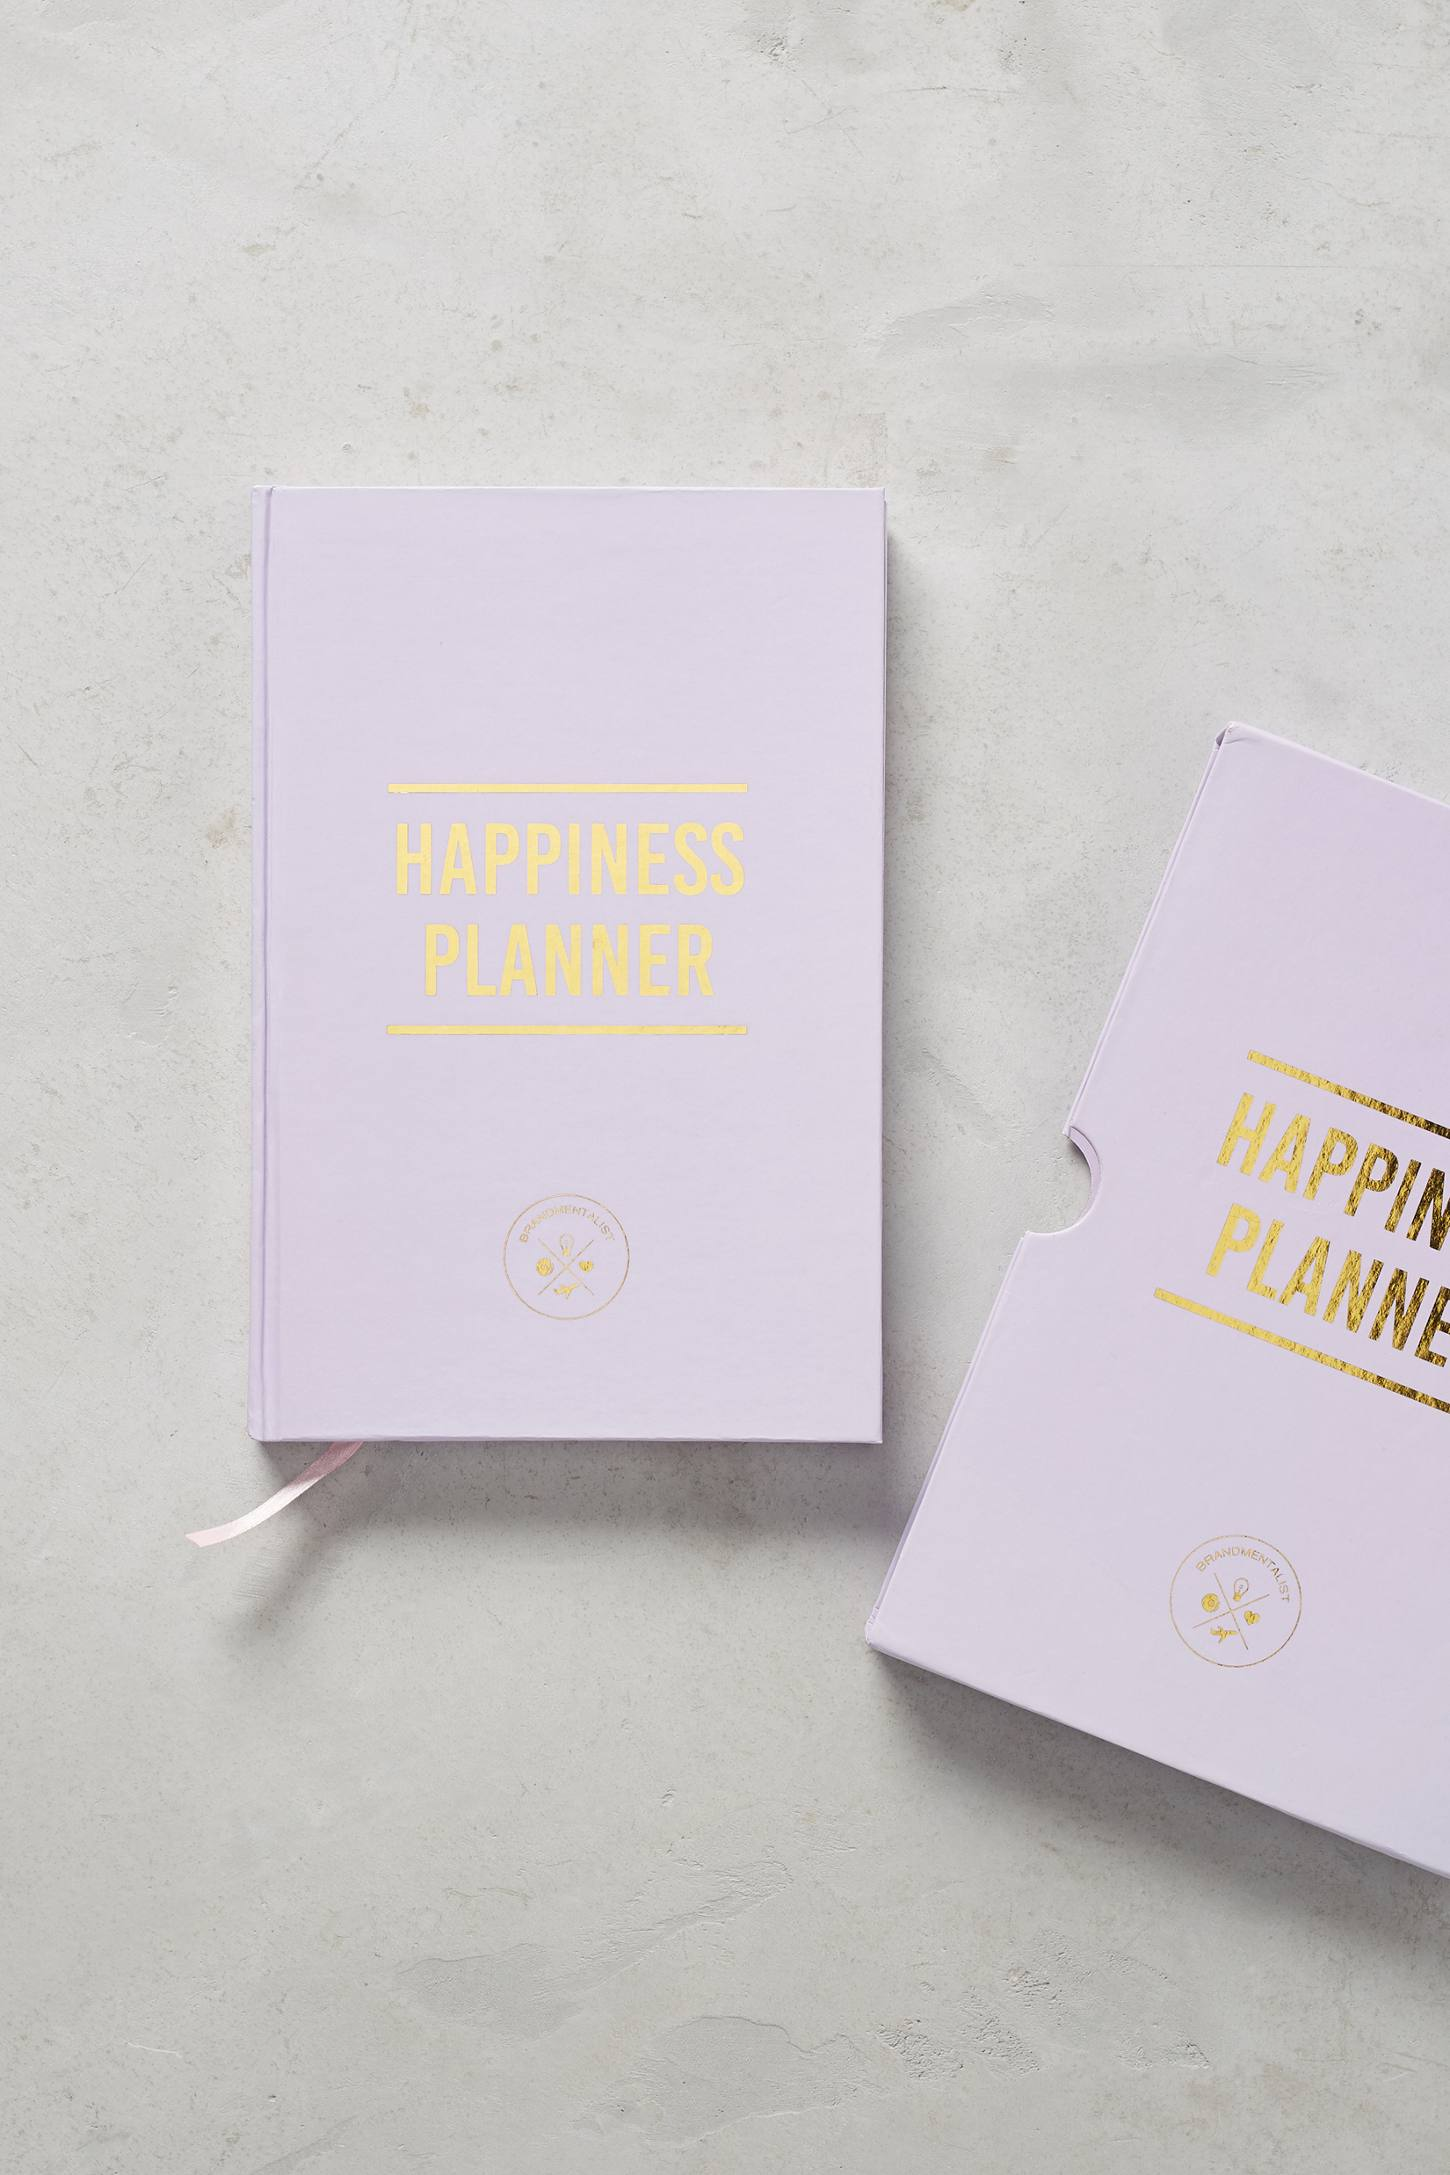 Slide View: 1: The Happiness Planner